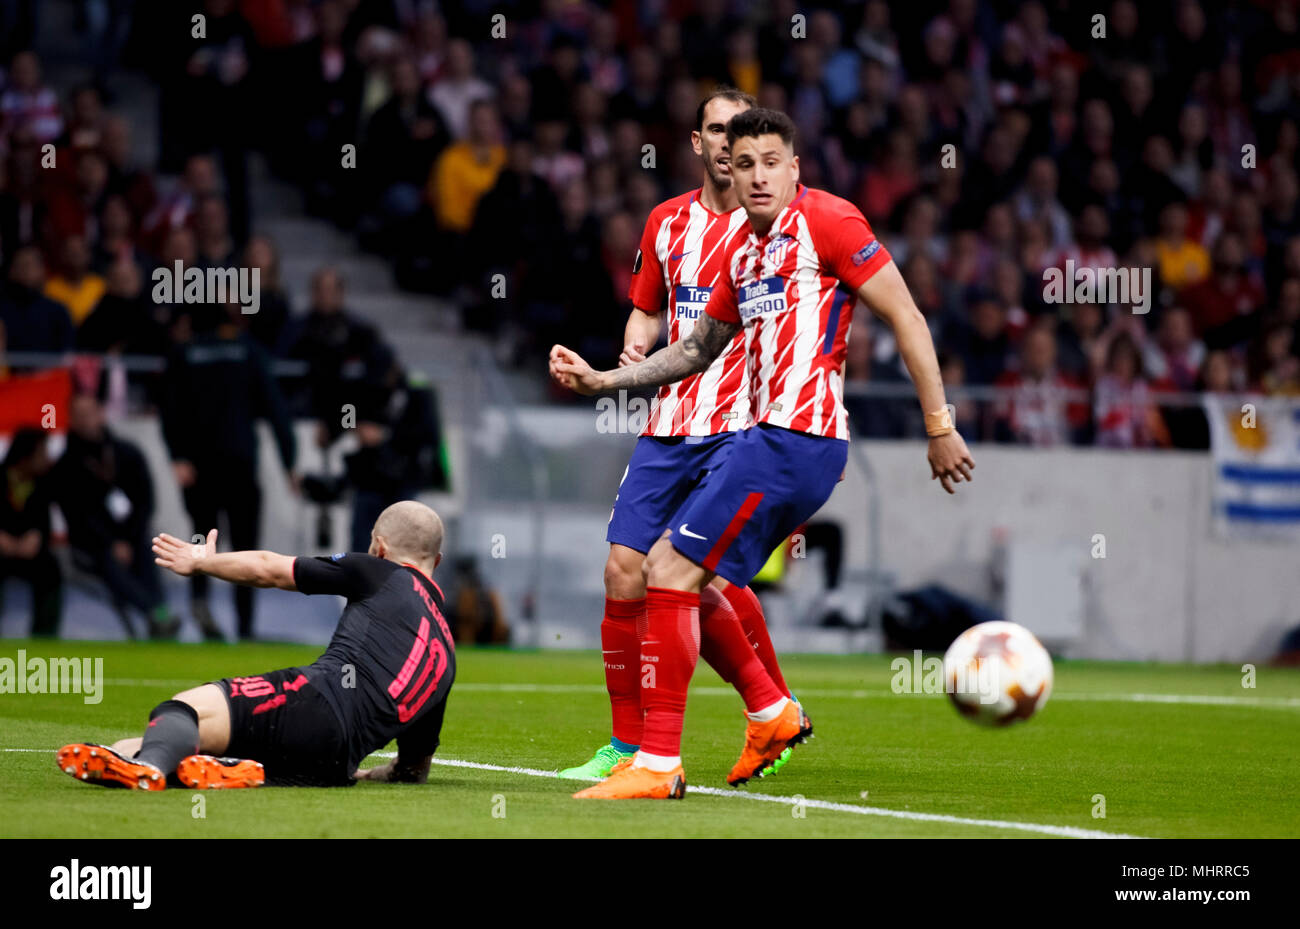 Madrid, Spain. 3rd May, 2018. Jose Maria Gimenez  of Atletico de Madrid and  Jack Wilshere of Arsenal during the UEFA Europe League 2017/18 Semi final second leg match between Atletico de Madrid and Arsenal at Wanda Metropolitano Stadium in Madrid on May 3, 2018. (Photo by Guille Martinez/Cordon Press) Credit: CORDON PRESS/Alamy Live News - Stock Image